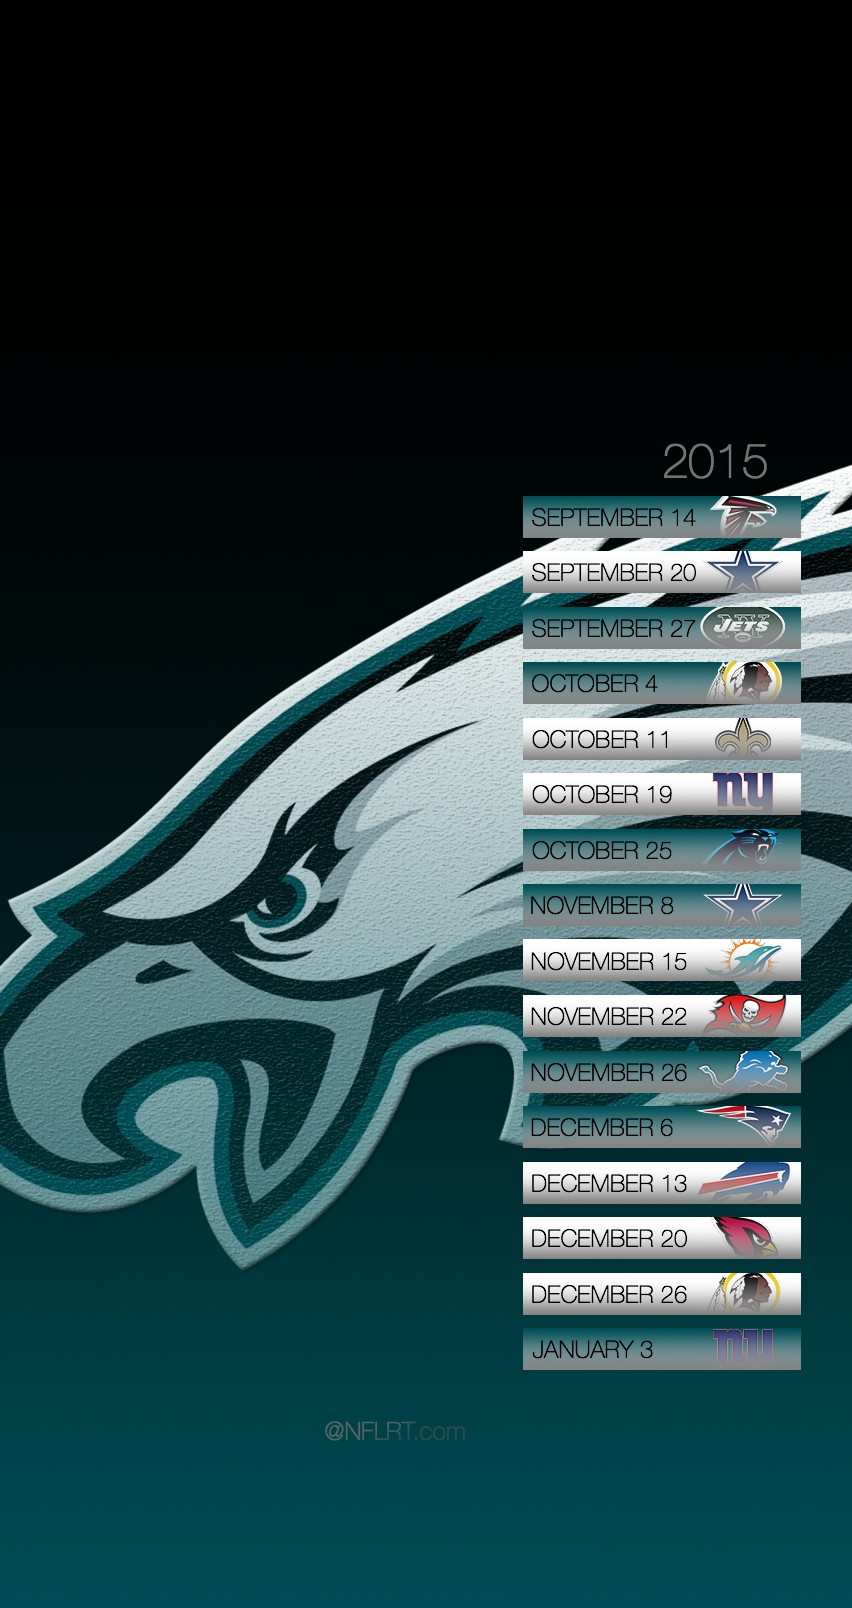 2015 schedule wallpaper : eagles | all wallpapers | pinterest